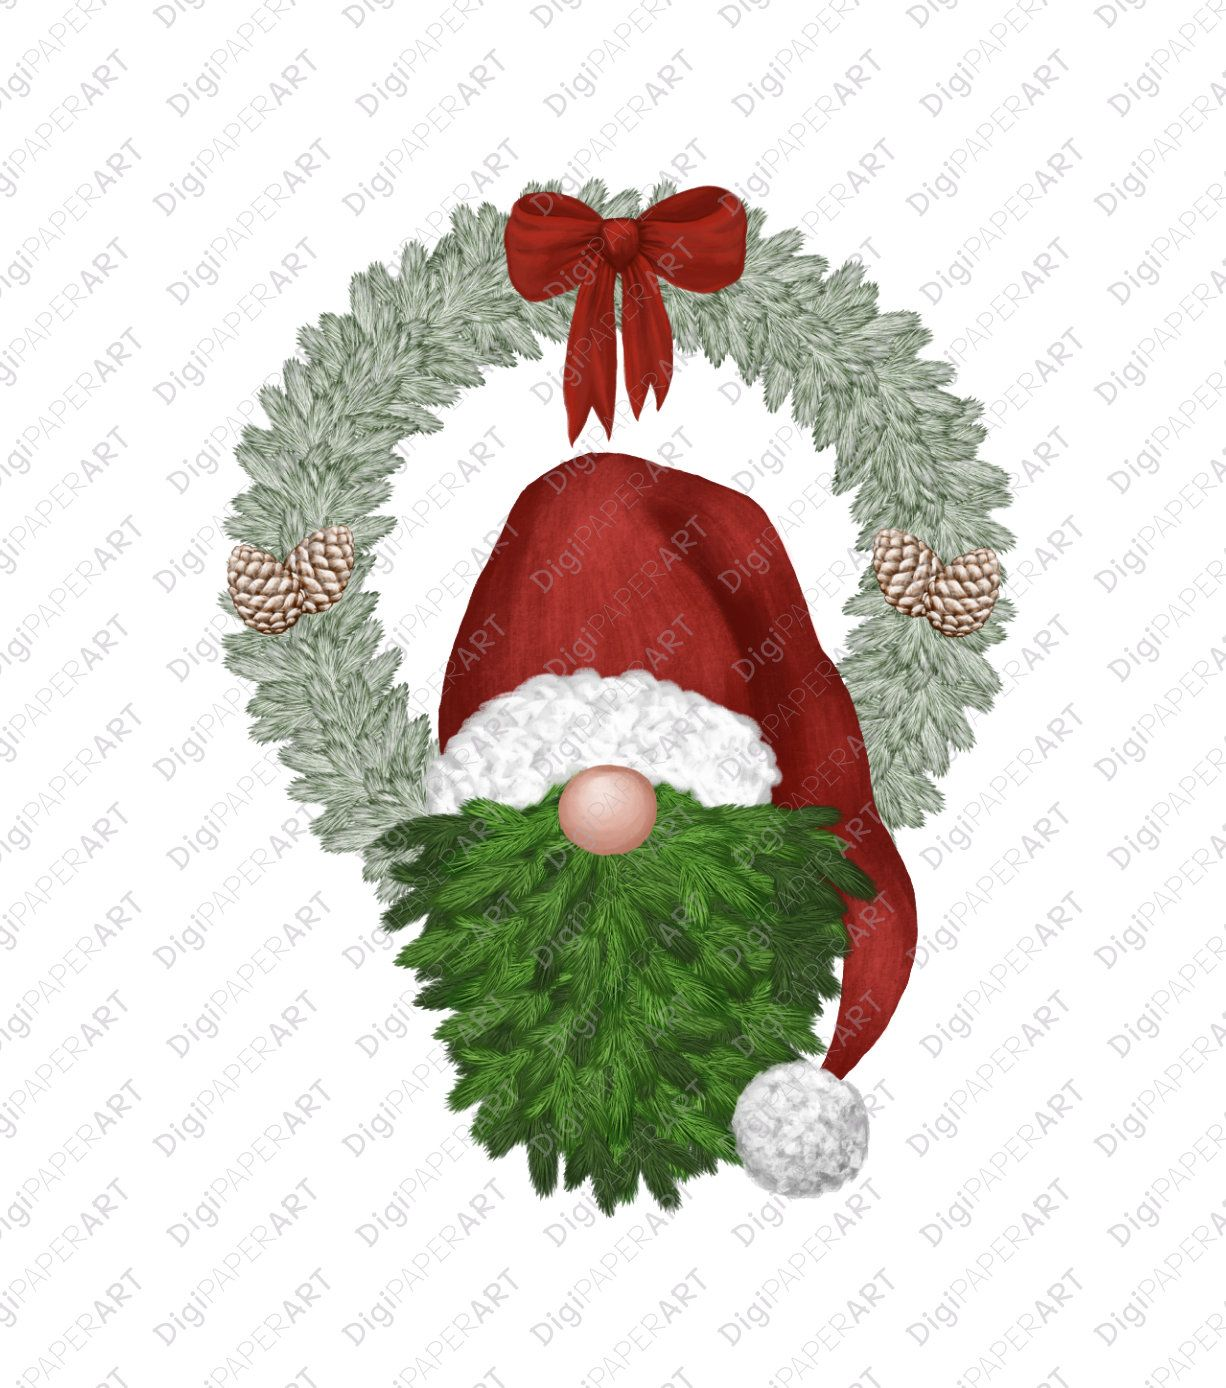 Santa Gnome PNG, Christmas Gnome Clipart, Scandinavian Gnomes Clipart, Nordic Gnomes Clip Art, Tomte Nisse Graphic PNG Design Elements #christmasgnomes